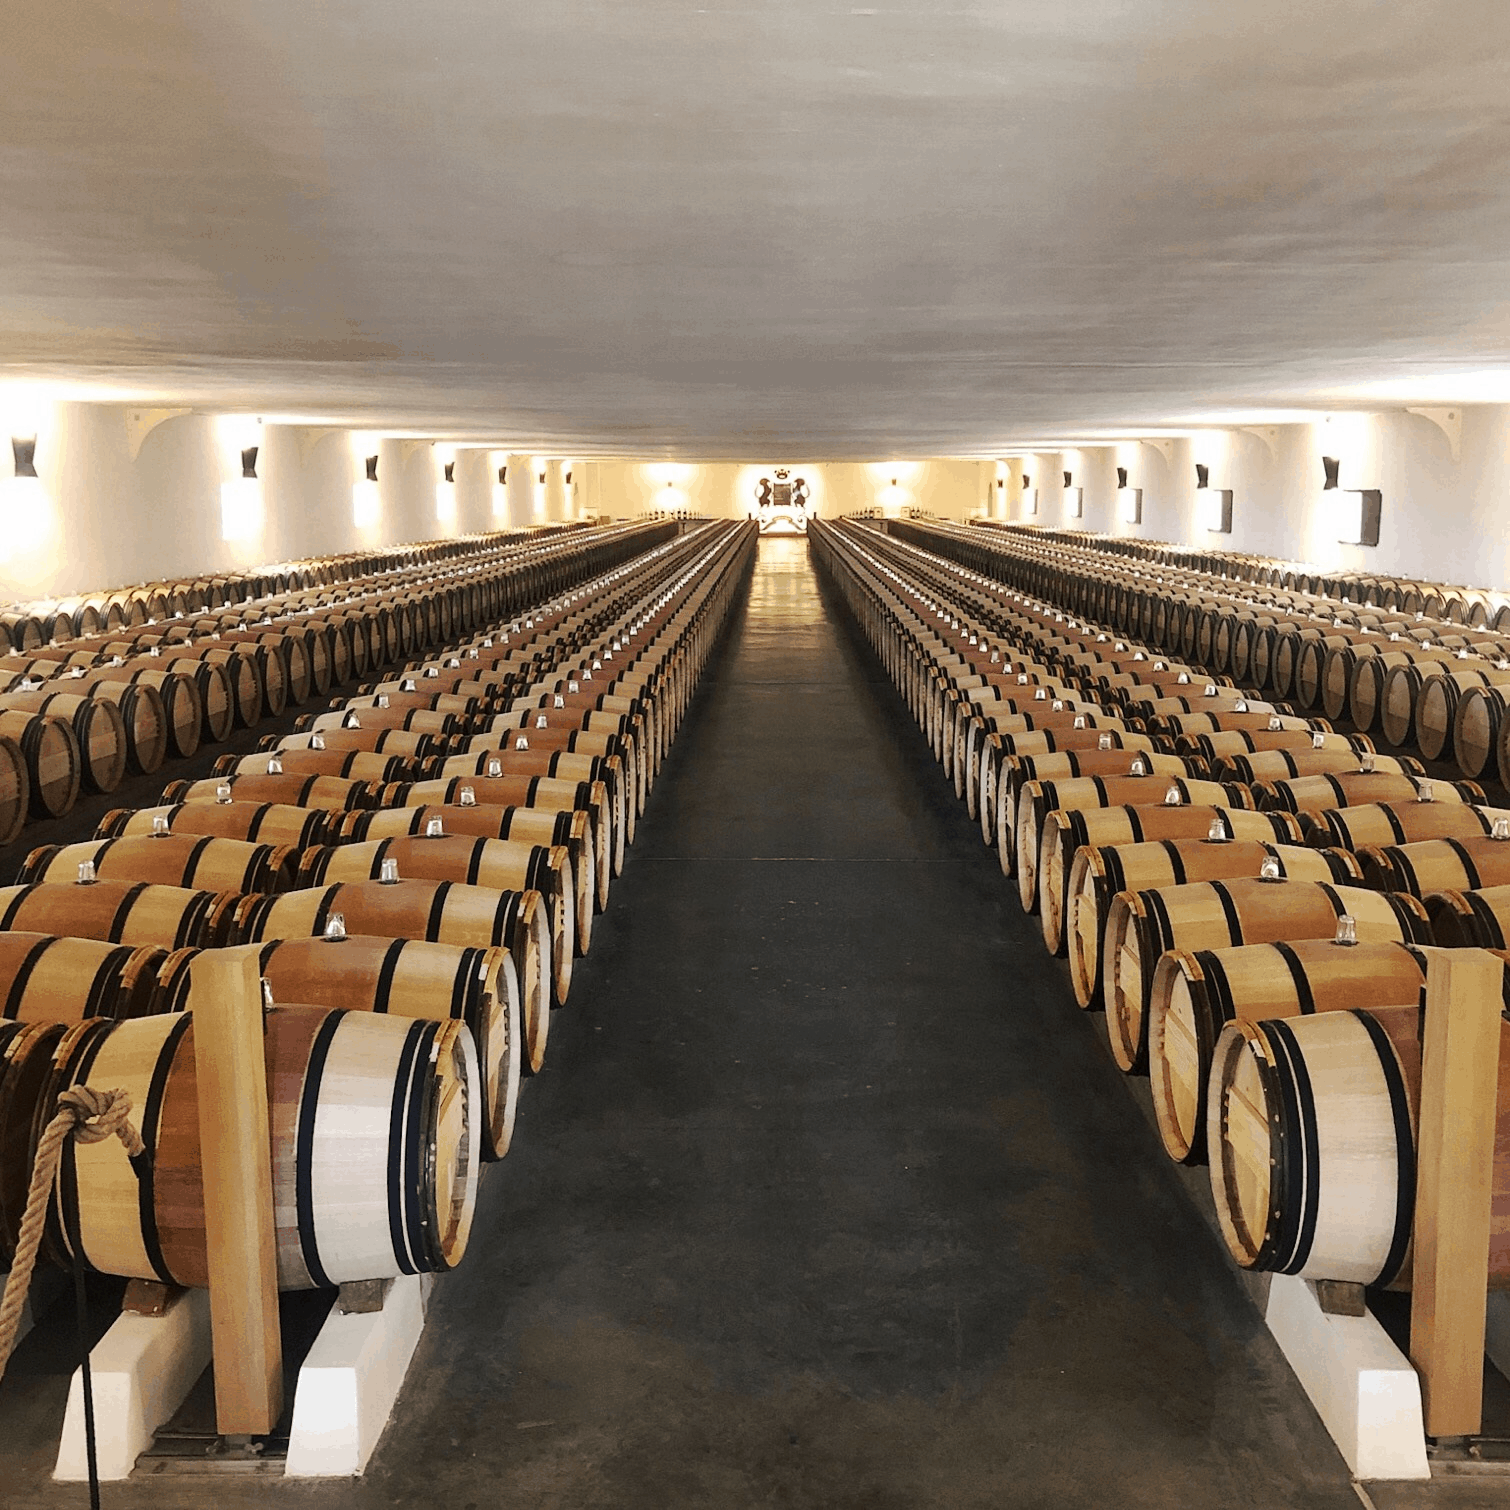 Barrels of 2018 Bordeaux en primeur in a wine cave